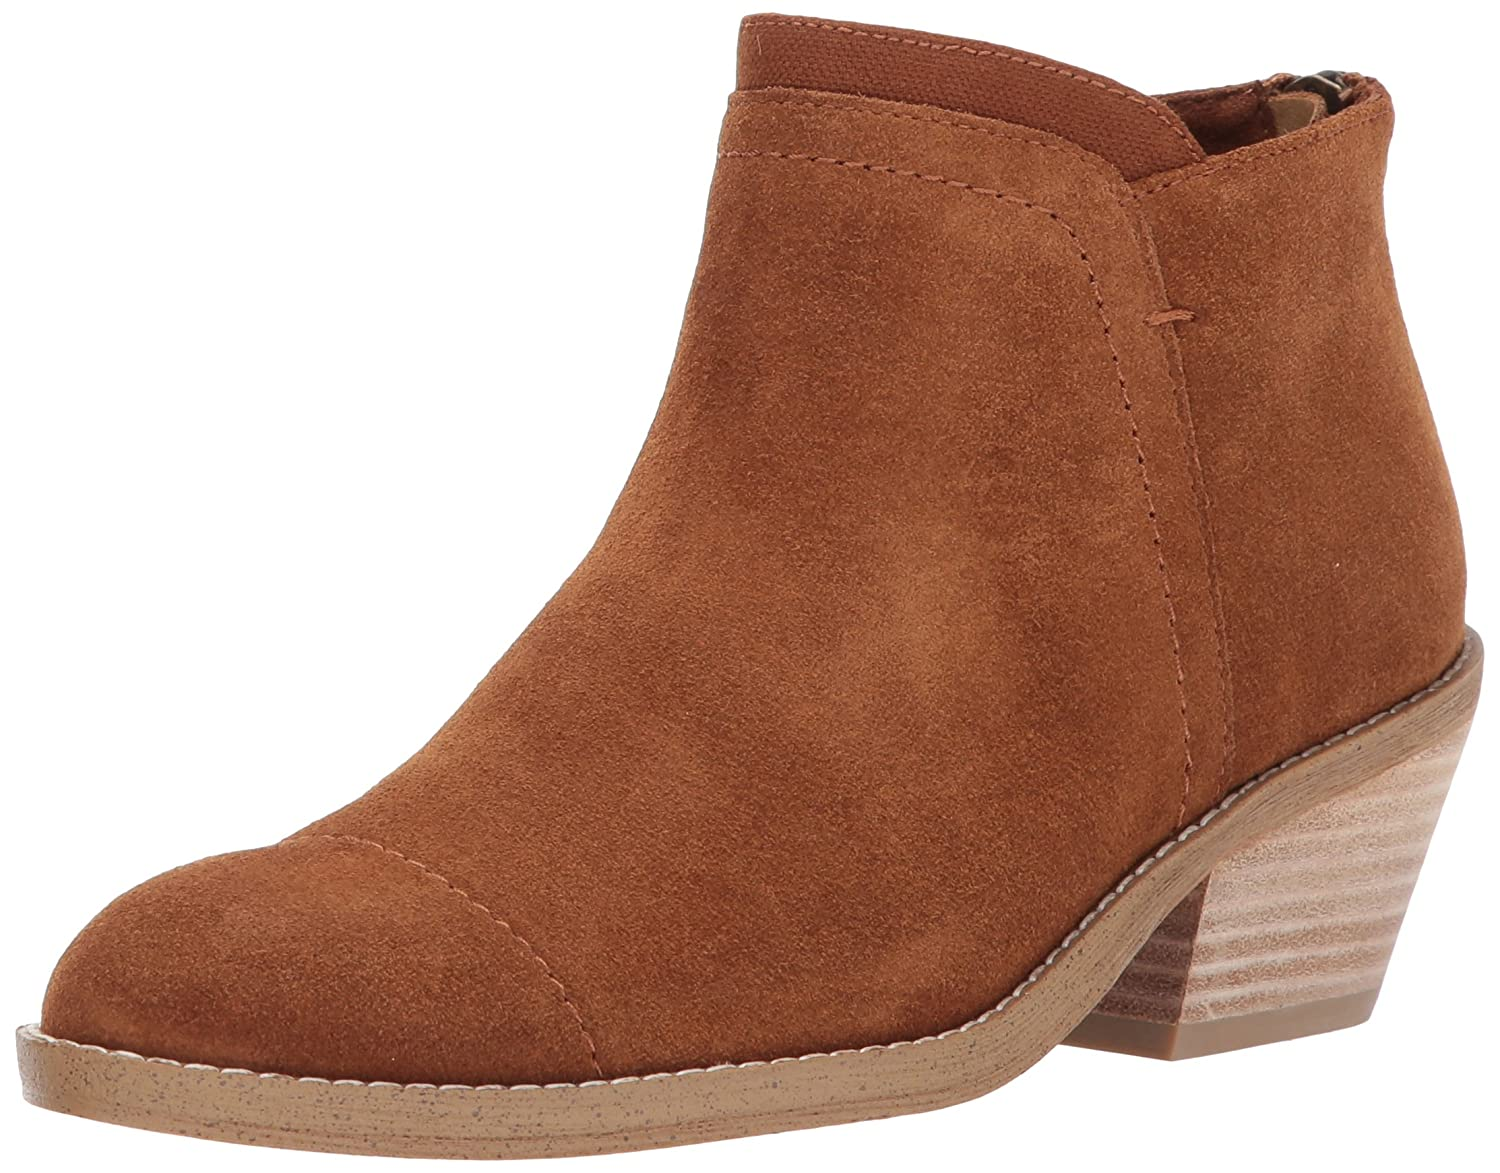 SplendidHome Women's Dale Ankle Boot B06XHDQ8L3 10 M US|Whiskey